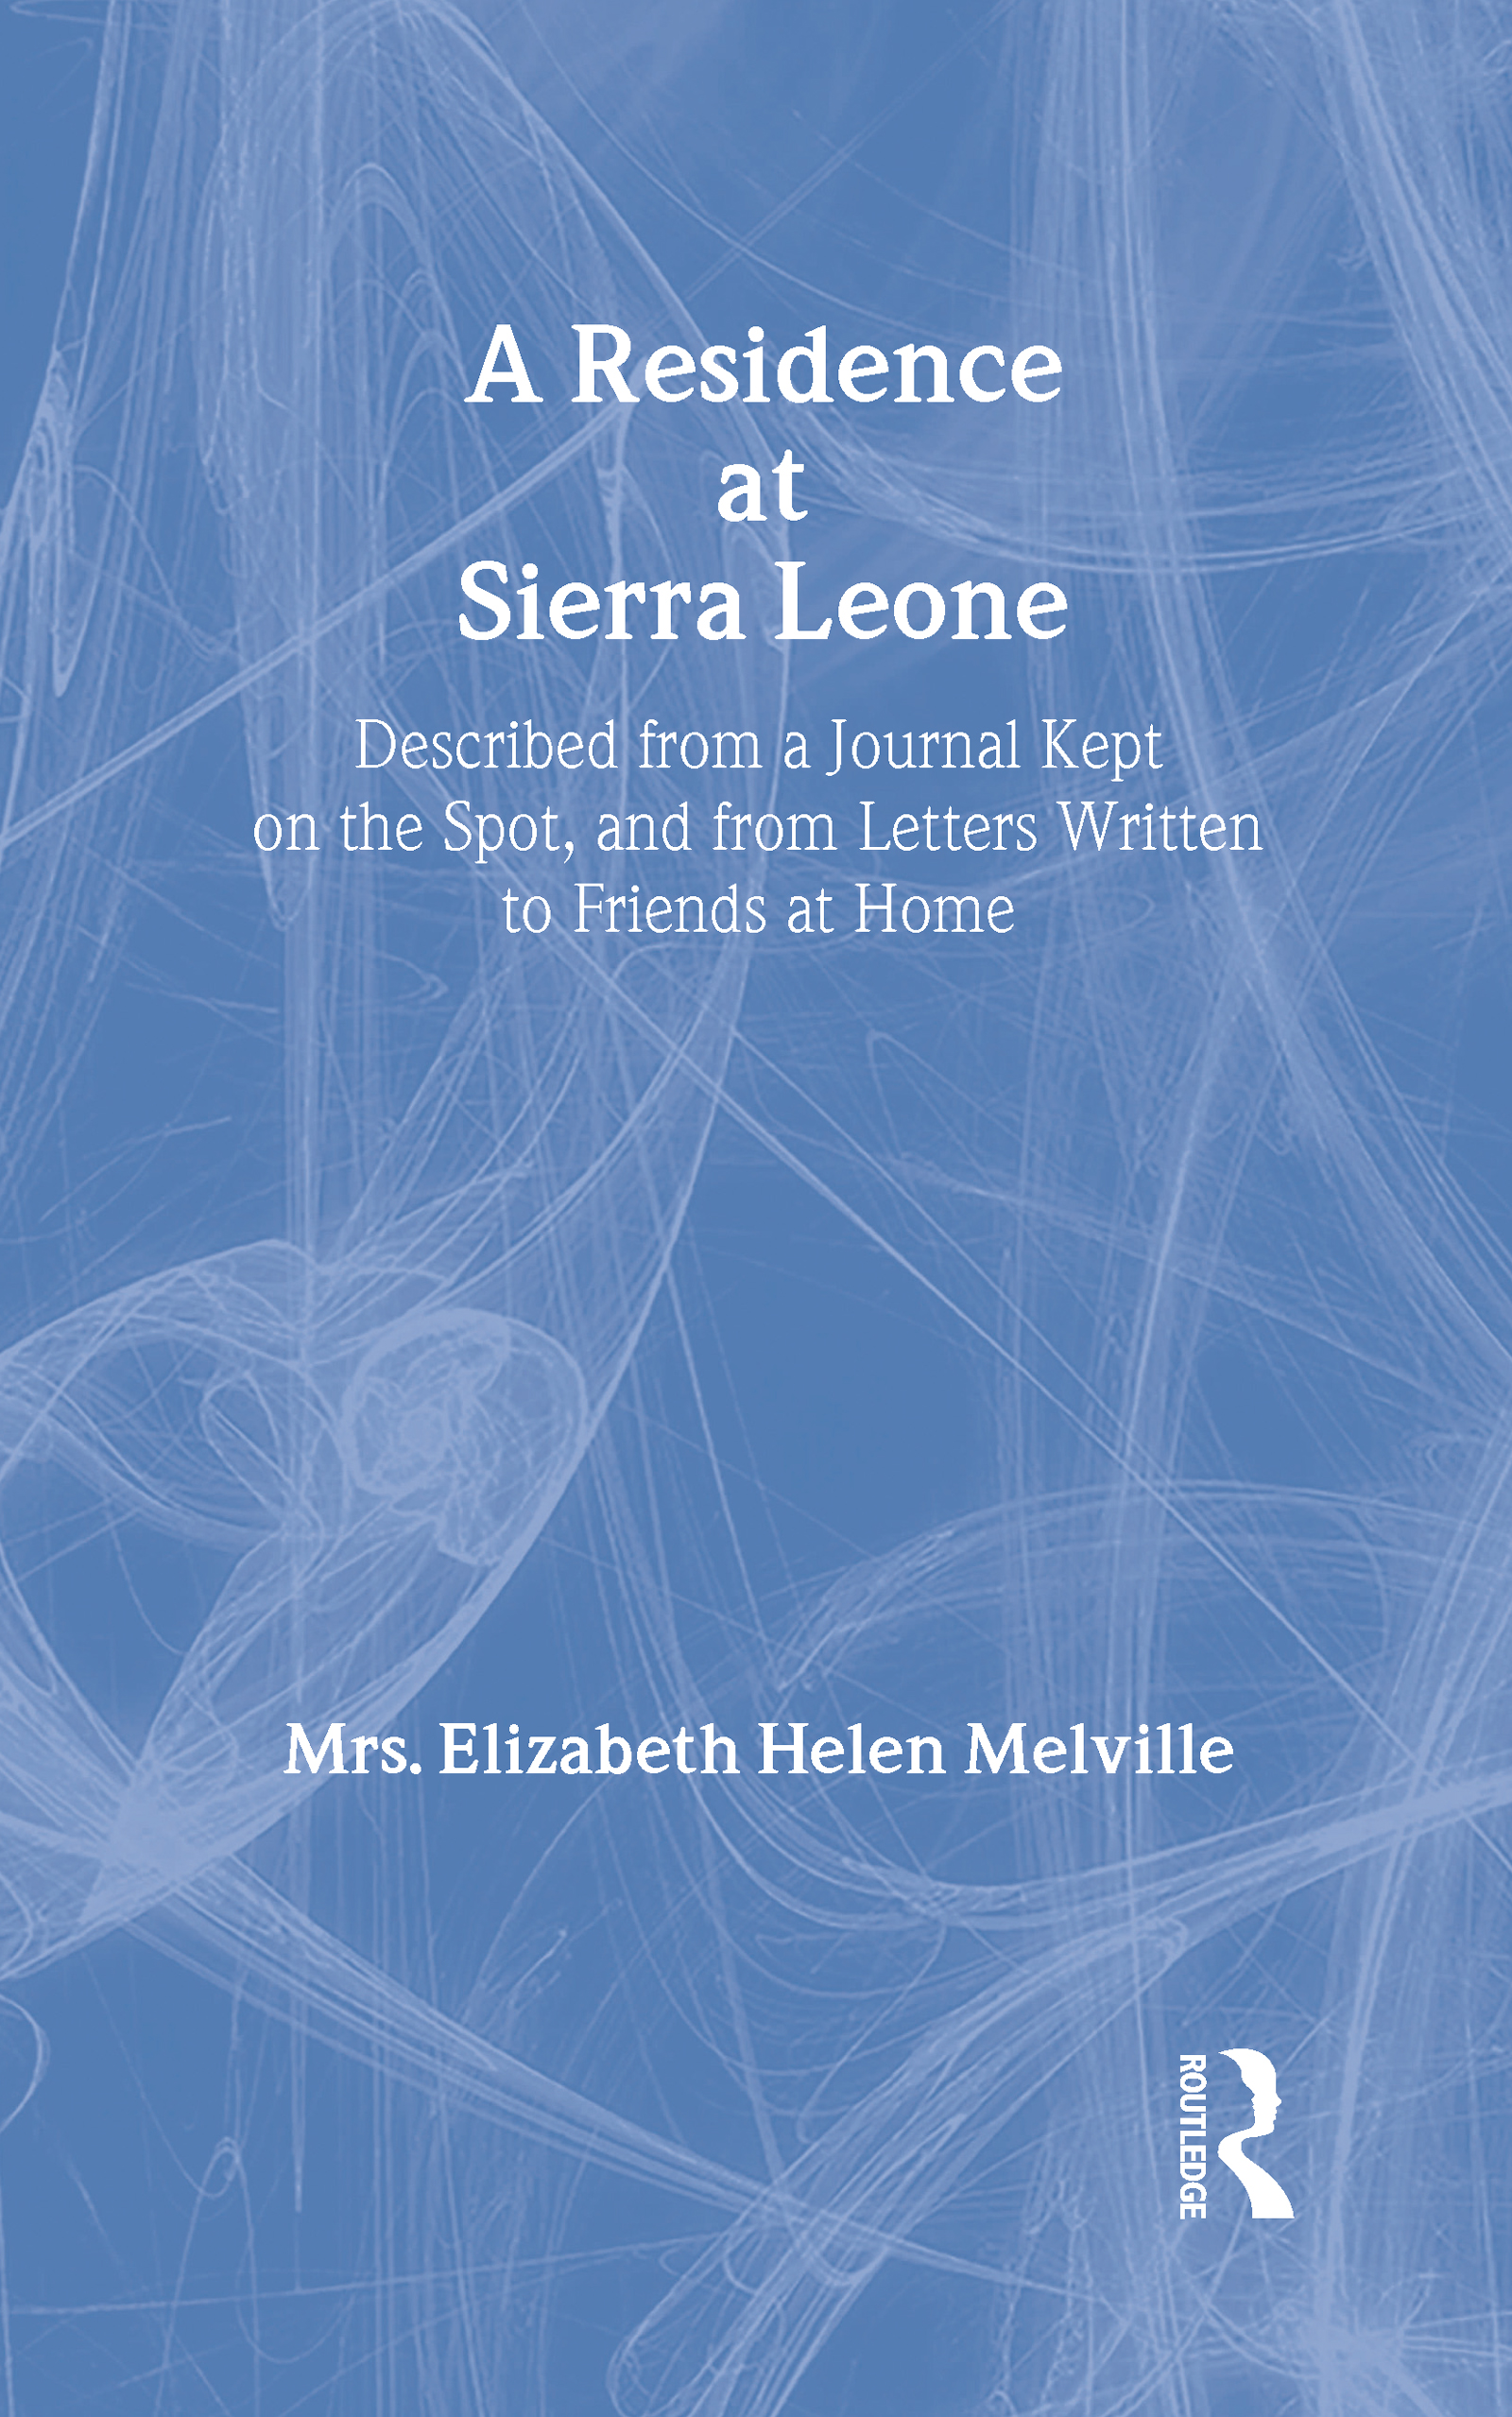 A Residence at Sierra Leone: Described from a Journal Kept on the Spot and from Letters Written to Friends at Home., 1st Edition (Hardback) book cover